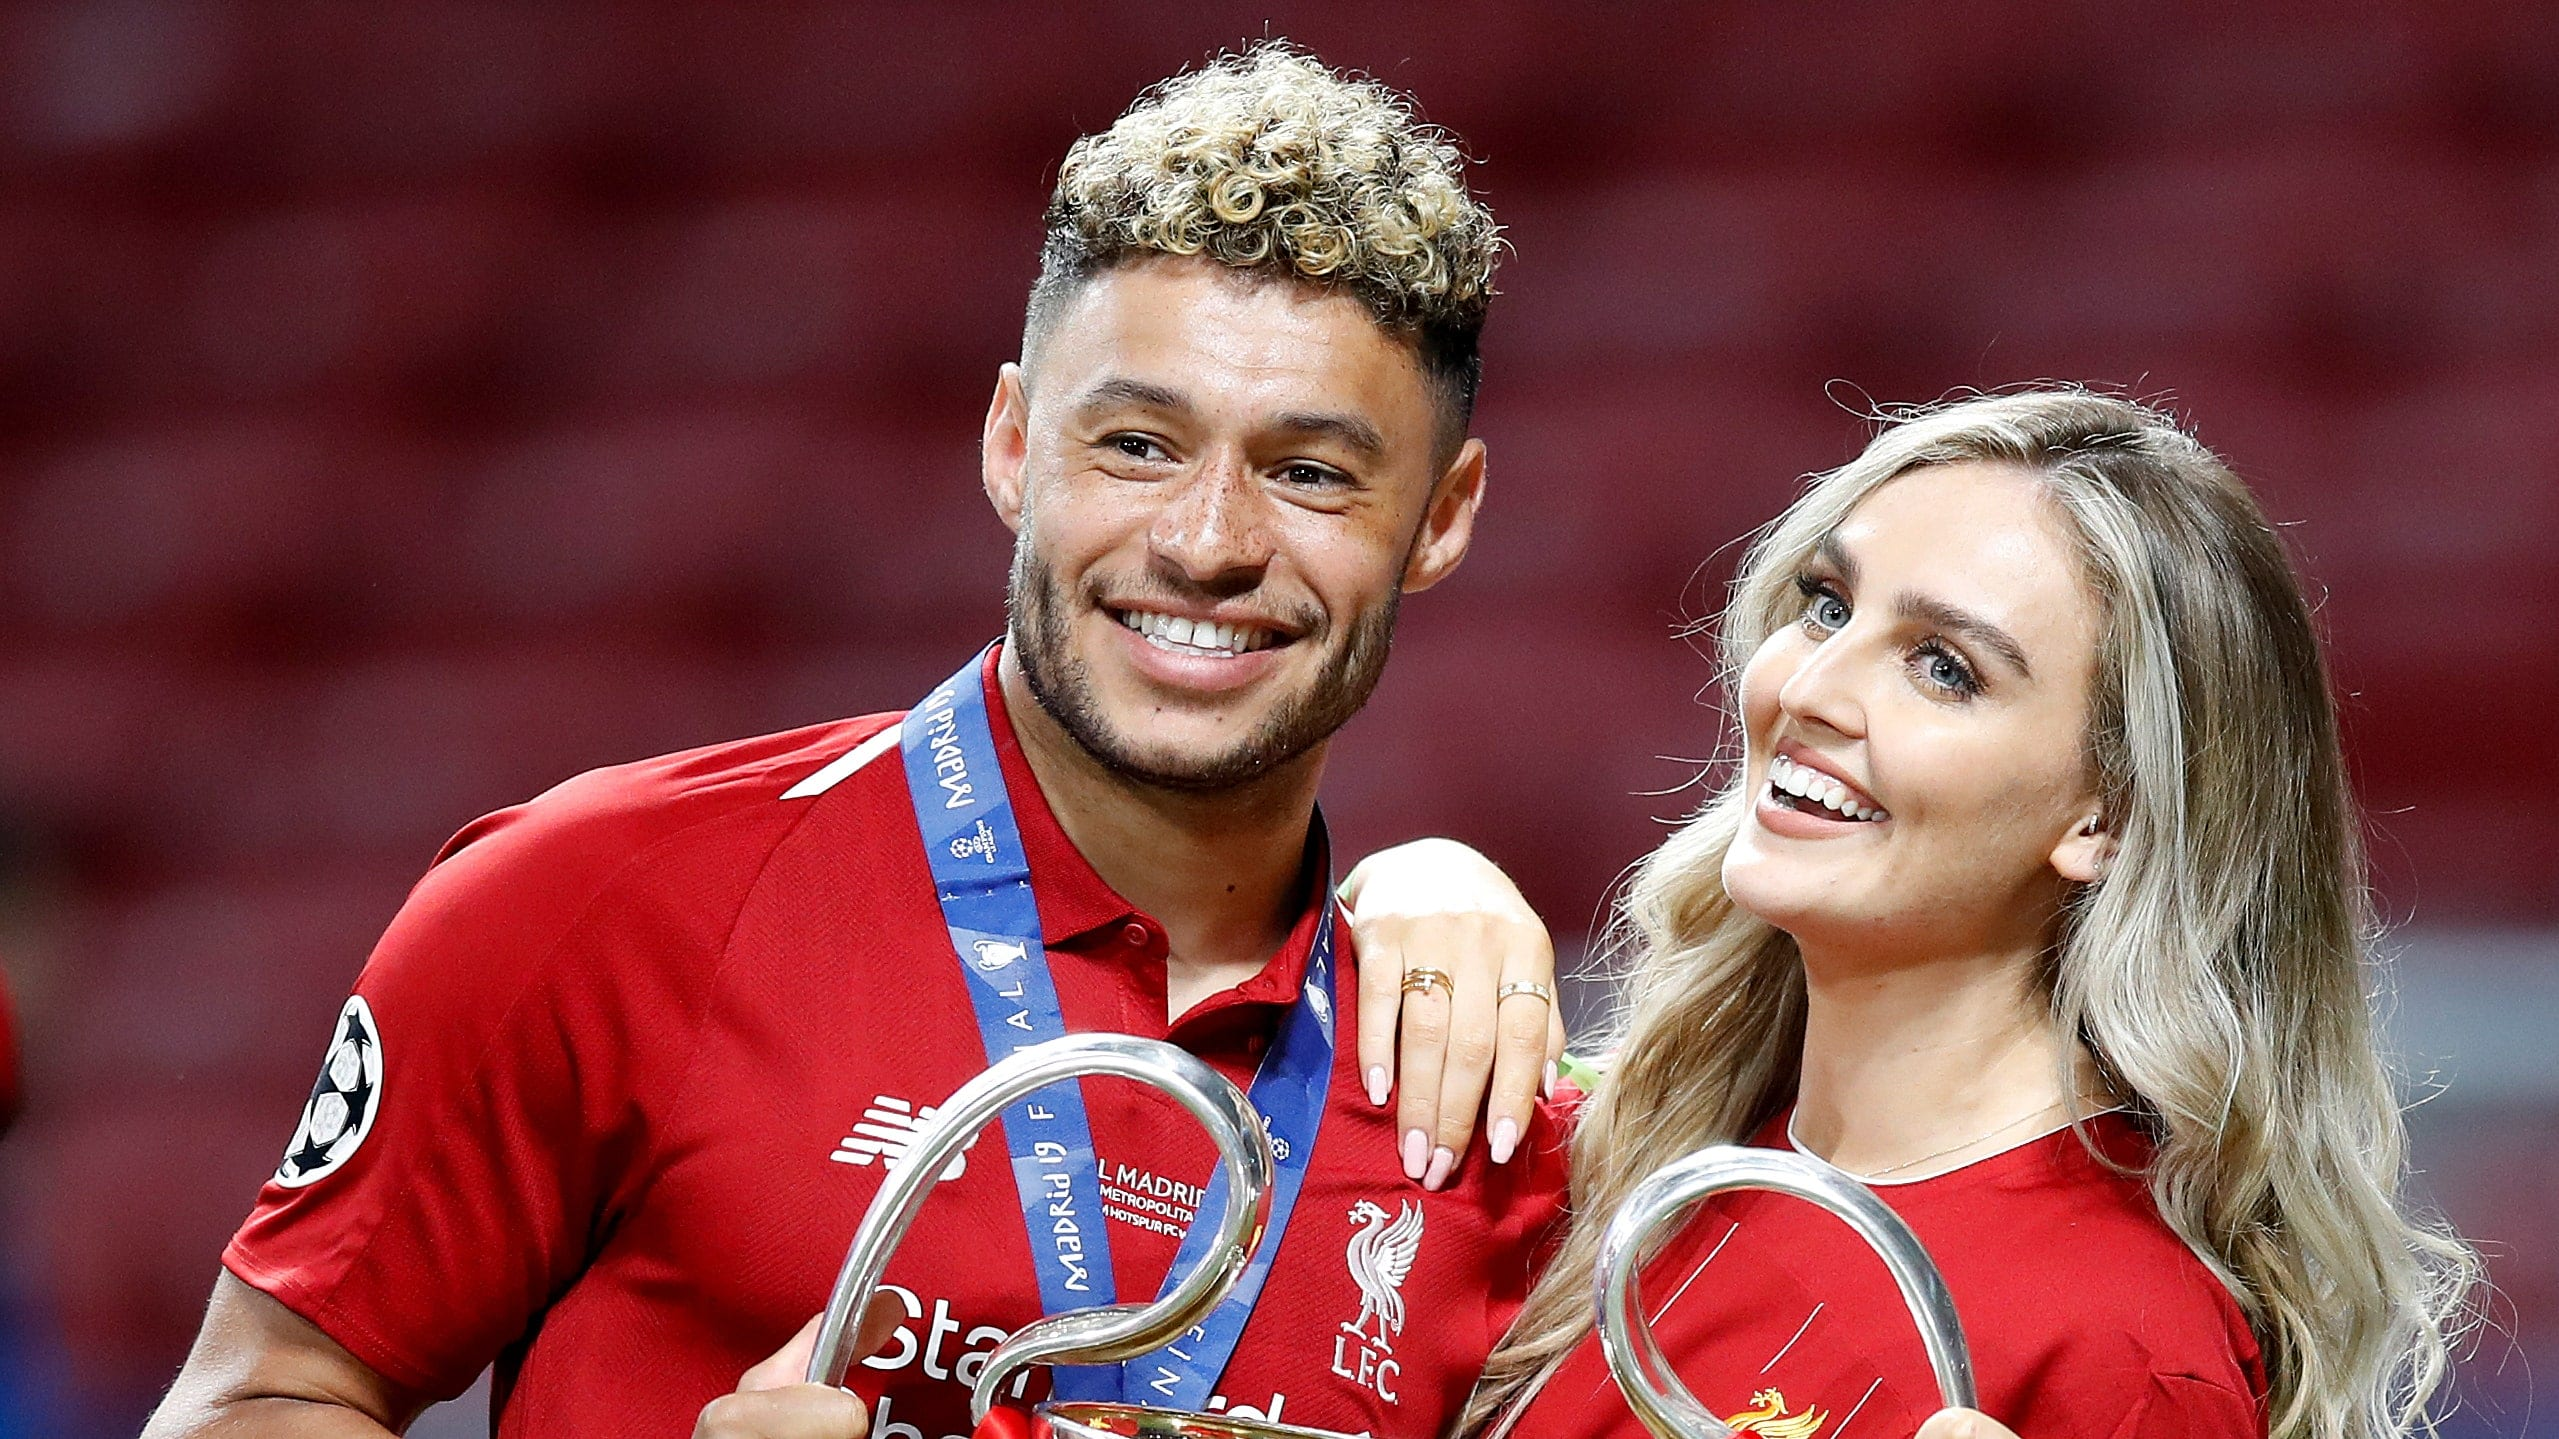 What is Alex oxlade chamberlain